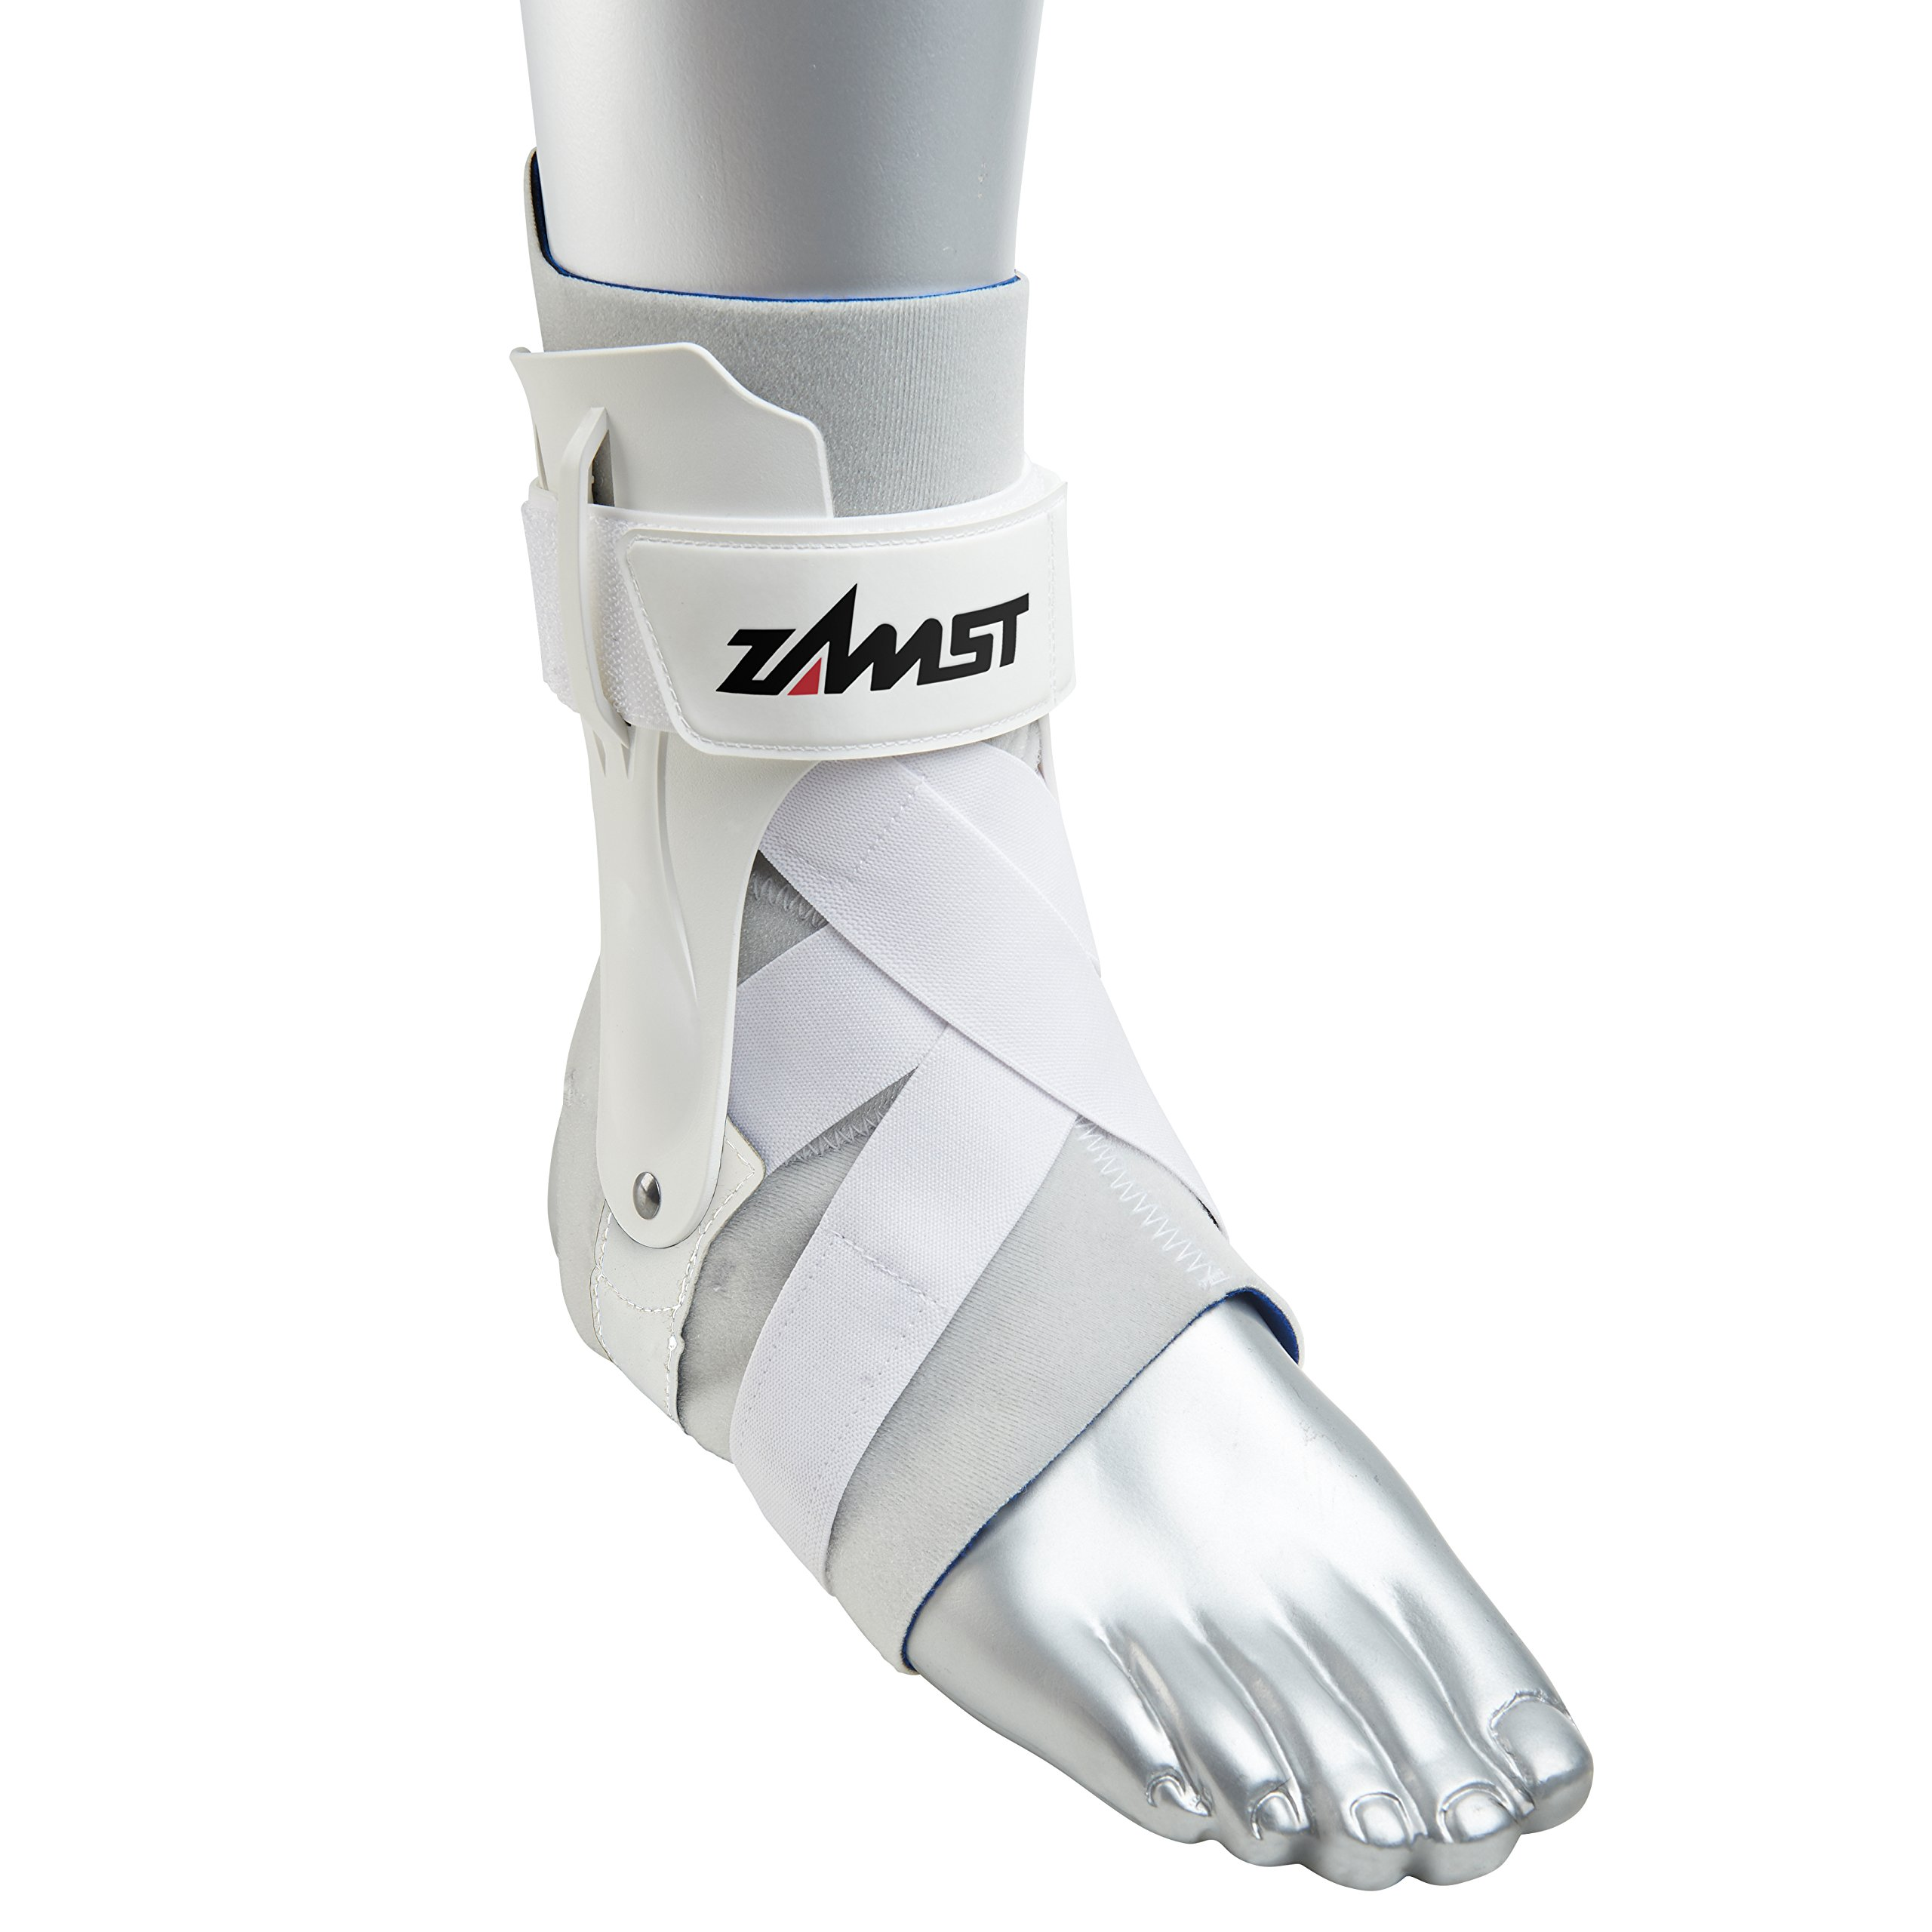 Zamst A2-DX Strong Support Ankle Brace, White, Large - Right by Zamst